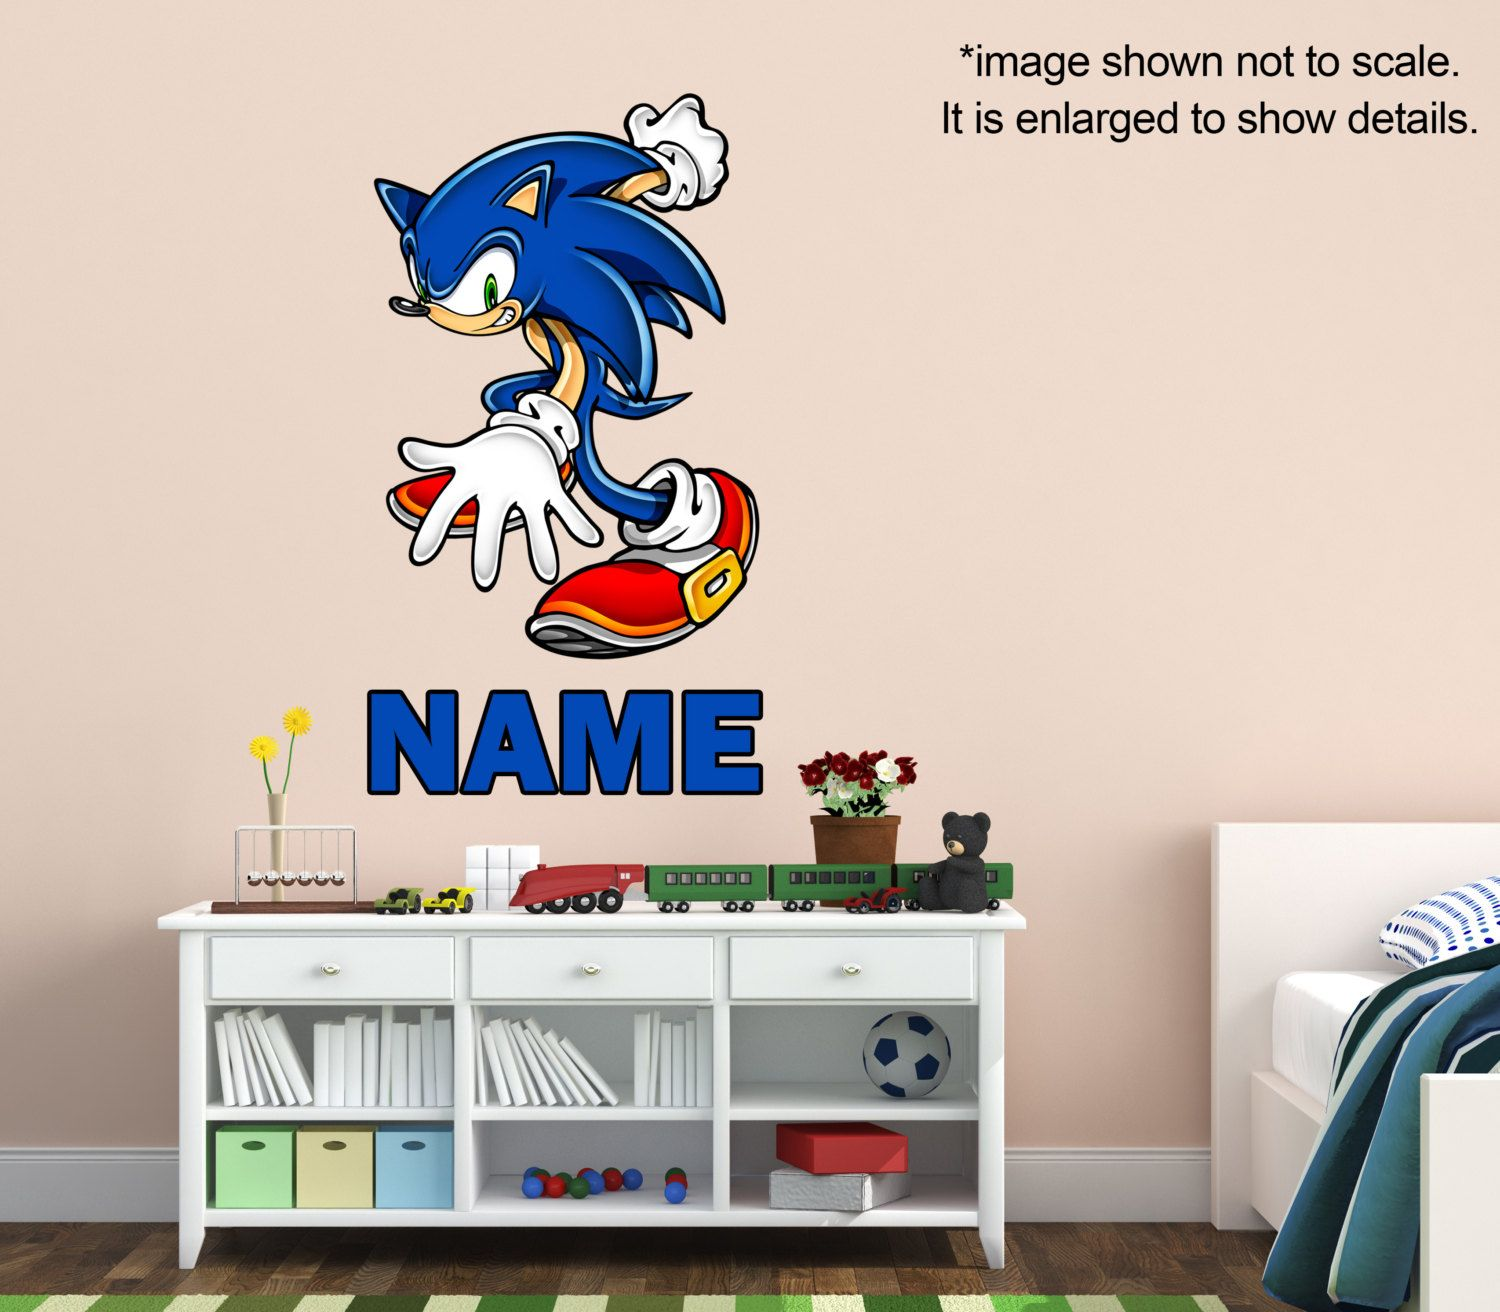 Sonic The Hedgehog Name Custom Vinyl Wall Decal Kids Room Decor - Custom vinyl wall decals how to remove